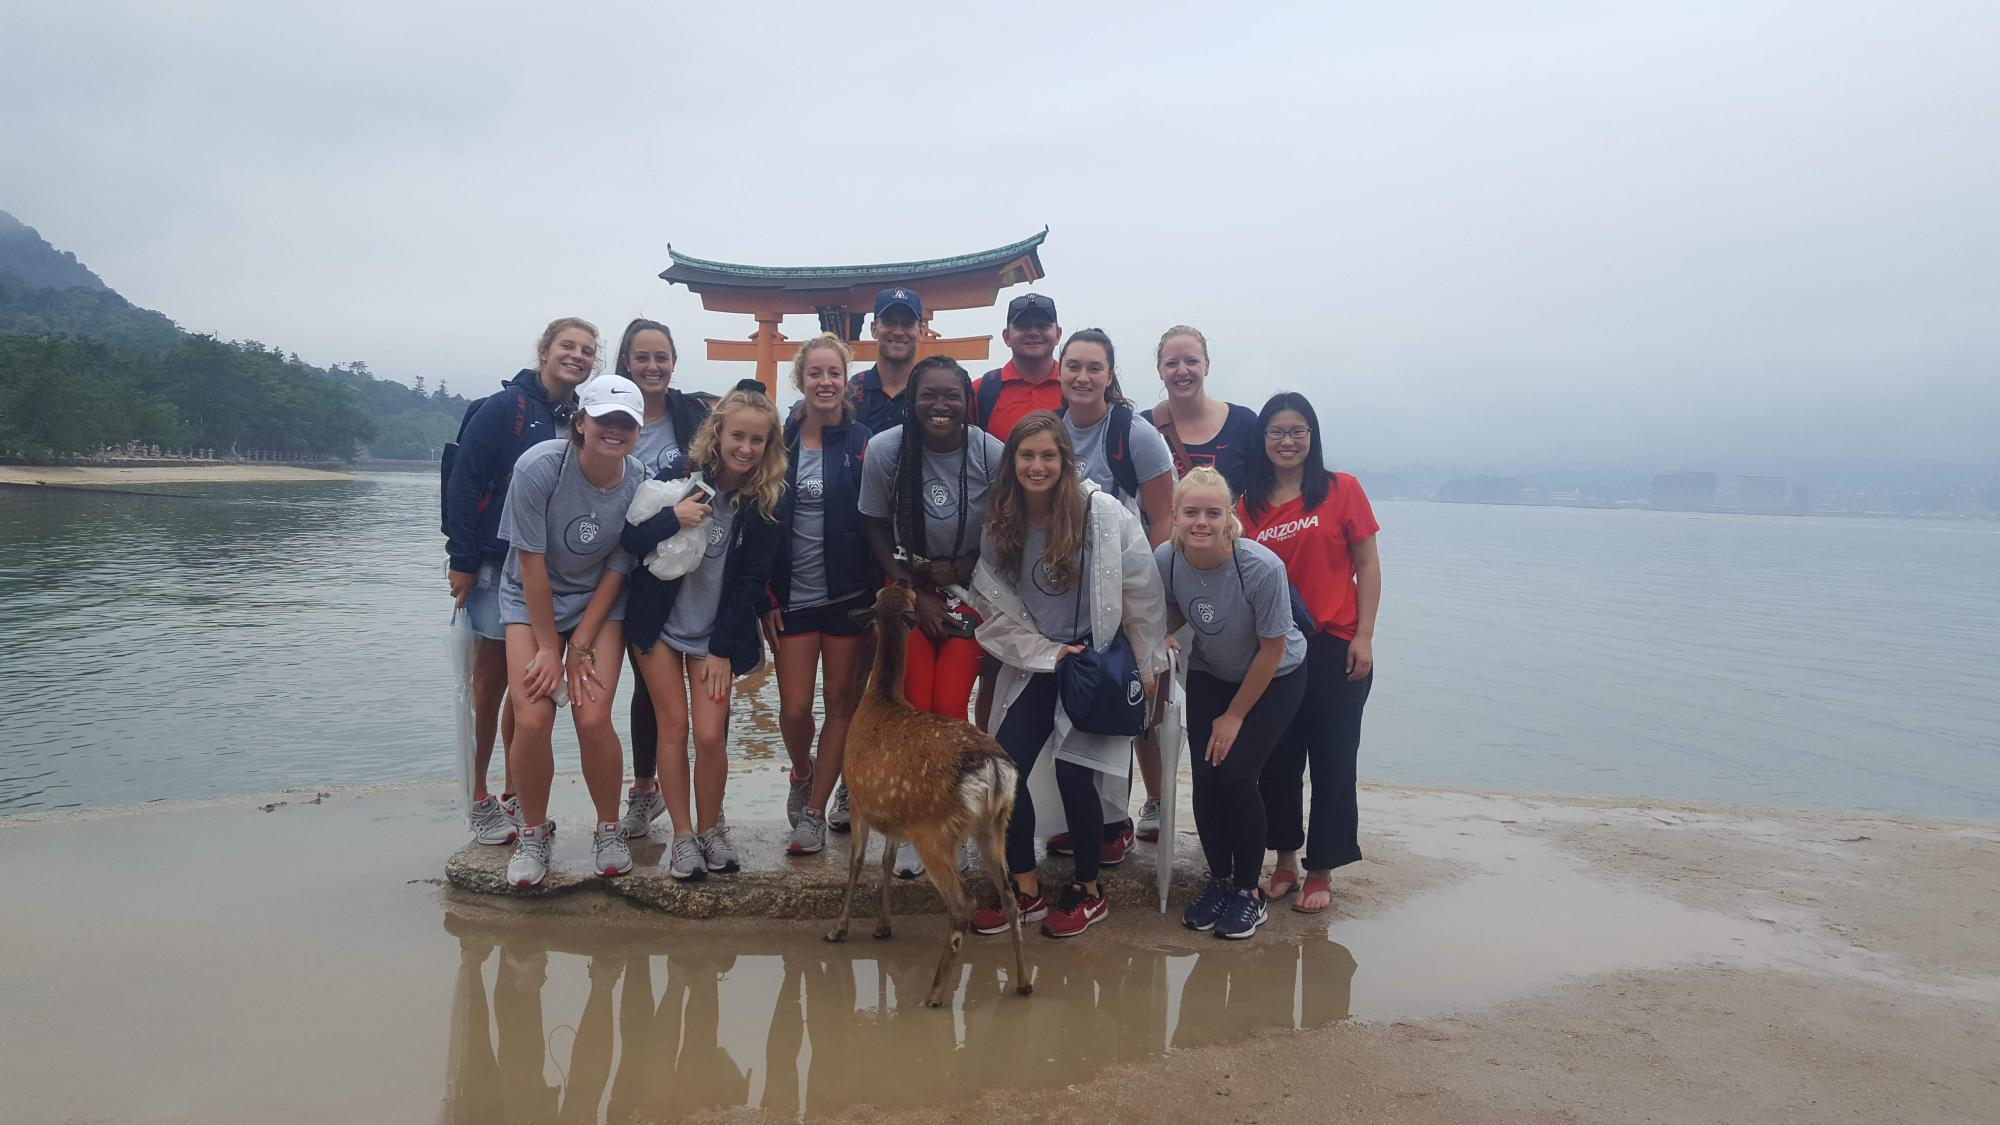 The UA women's tennis team added a study abroad component to their trip to Japan last summer.